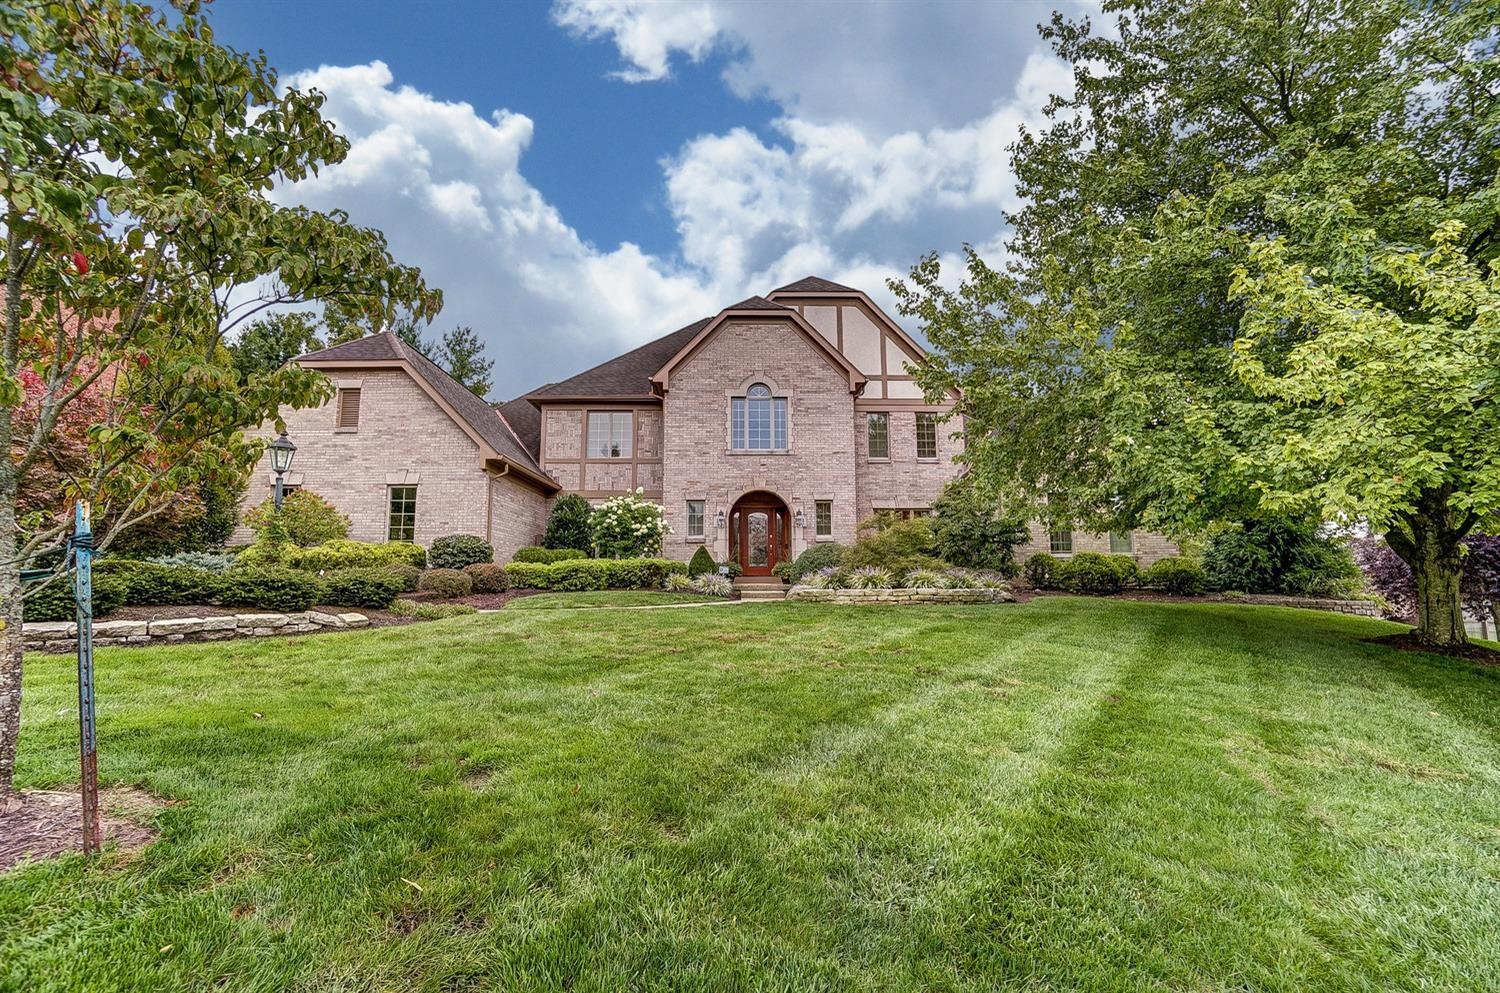 3170 Sawgrass Ct Newtown, OH